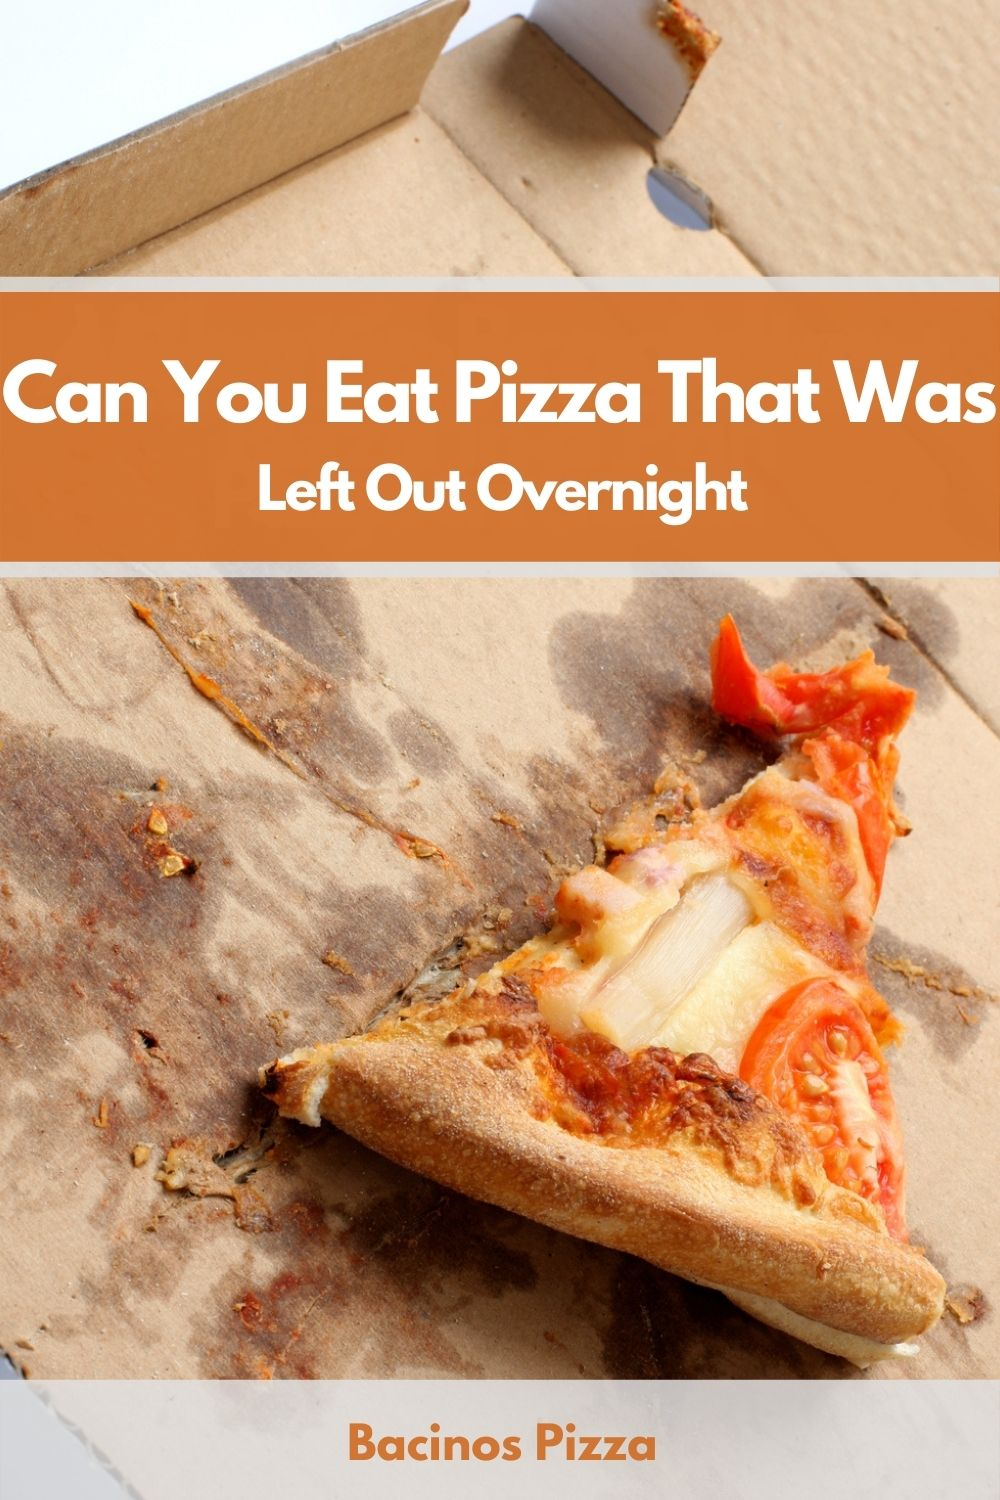 Can You Eat Pizza That Was Left Out Overnight pin 2